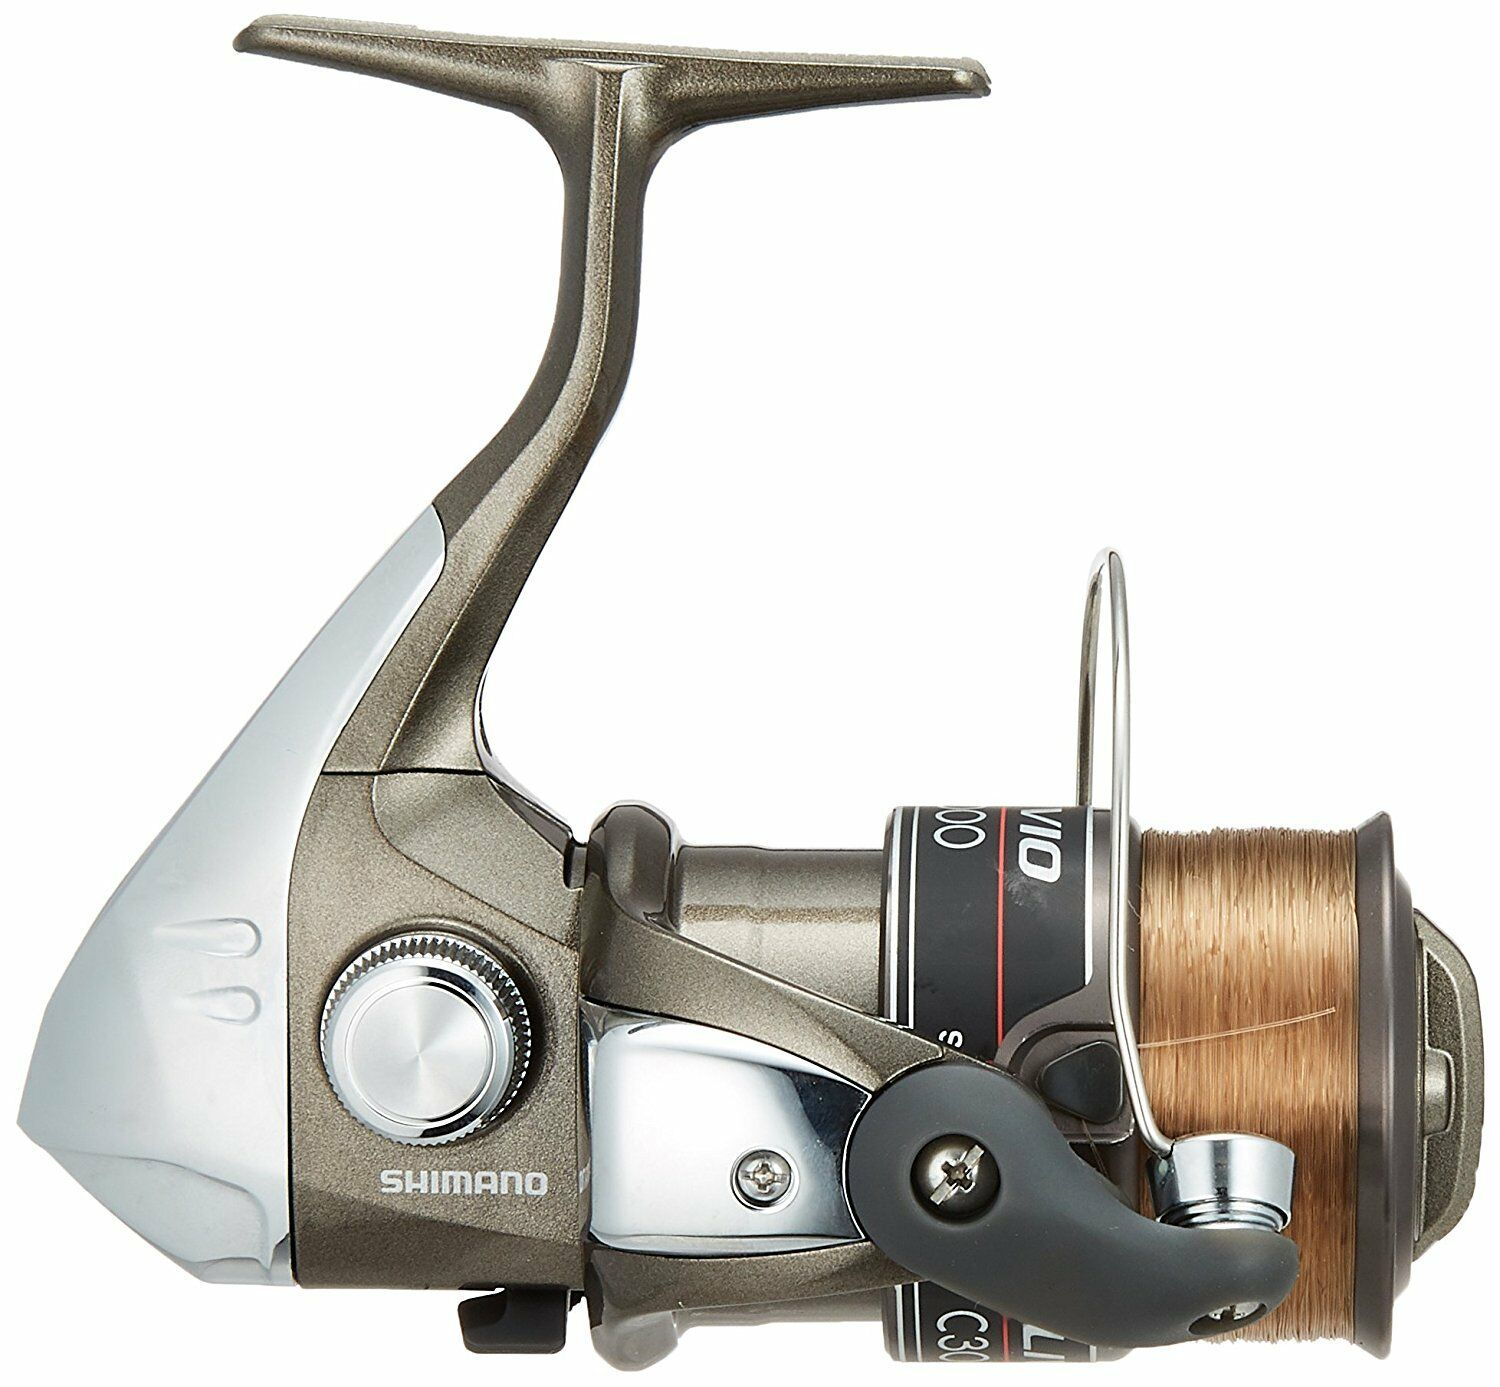 SHIMANO REEL ALIBIO C3000 NO. NO. NO. 3 NO. 150 M WITH THREAD BRAND NEW F/S 389917